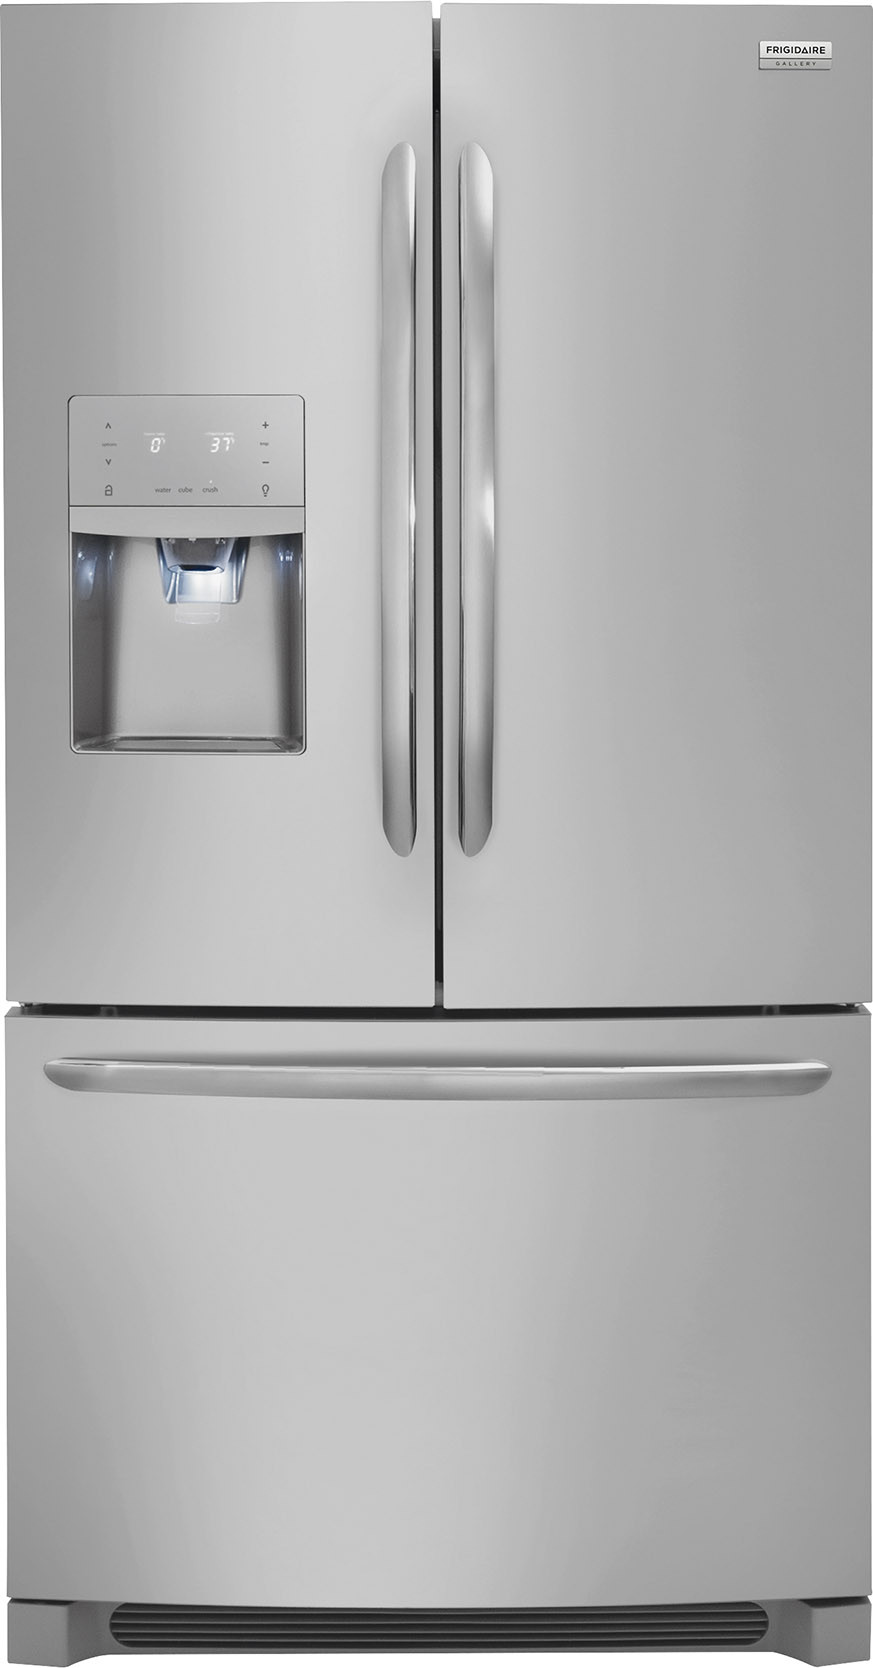 Frigidaire Gallery Refrigerator 36 FGHD2368T showcased by Corbeil Electro Store